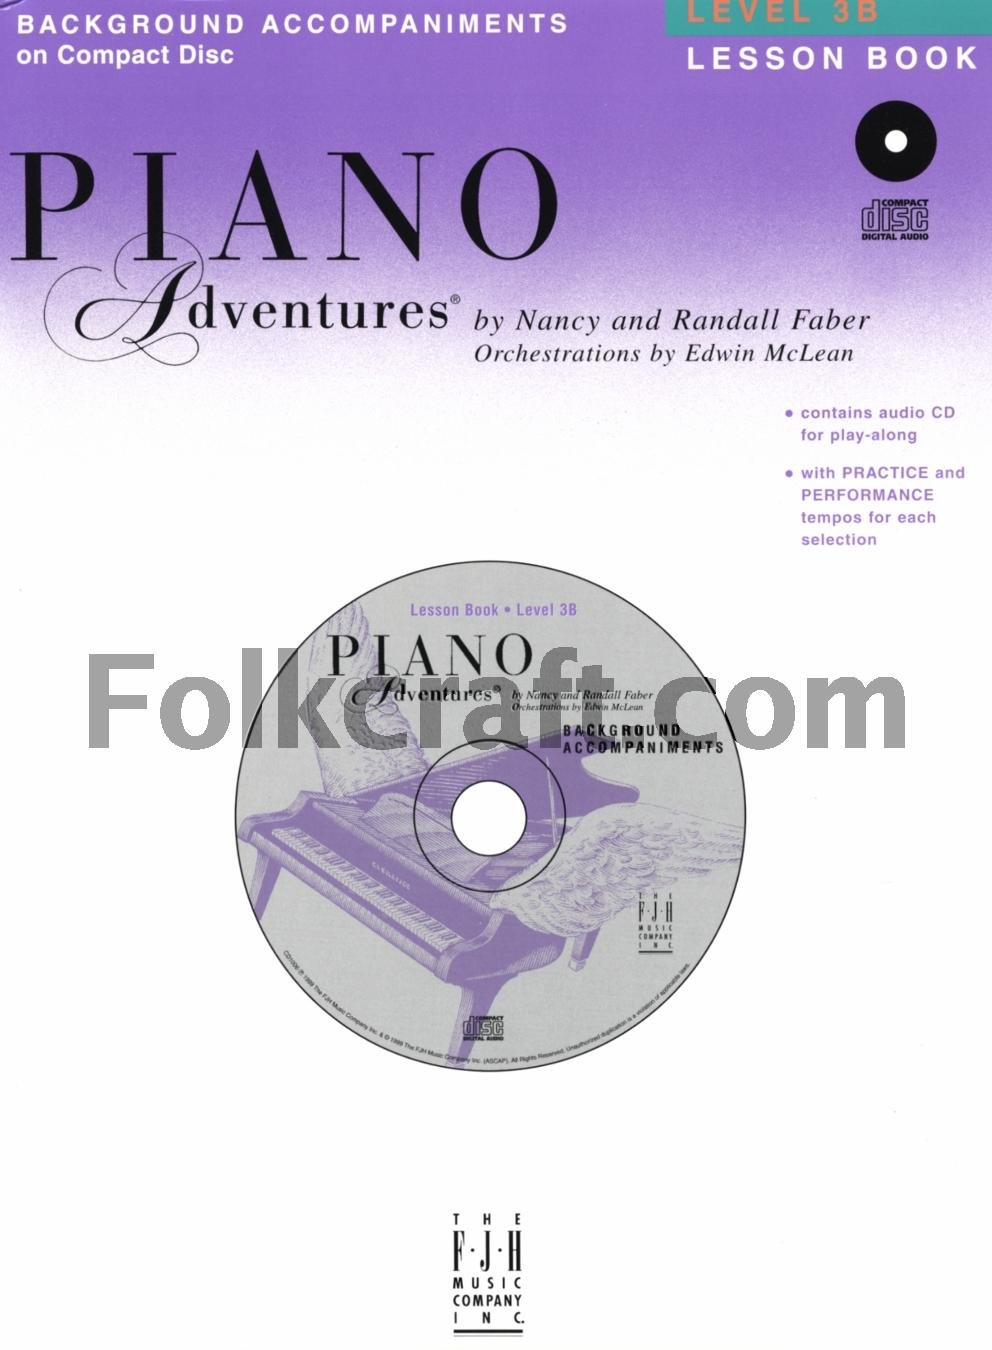 Piano Adventures - Level 3B Lessons Book CD